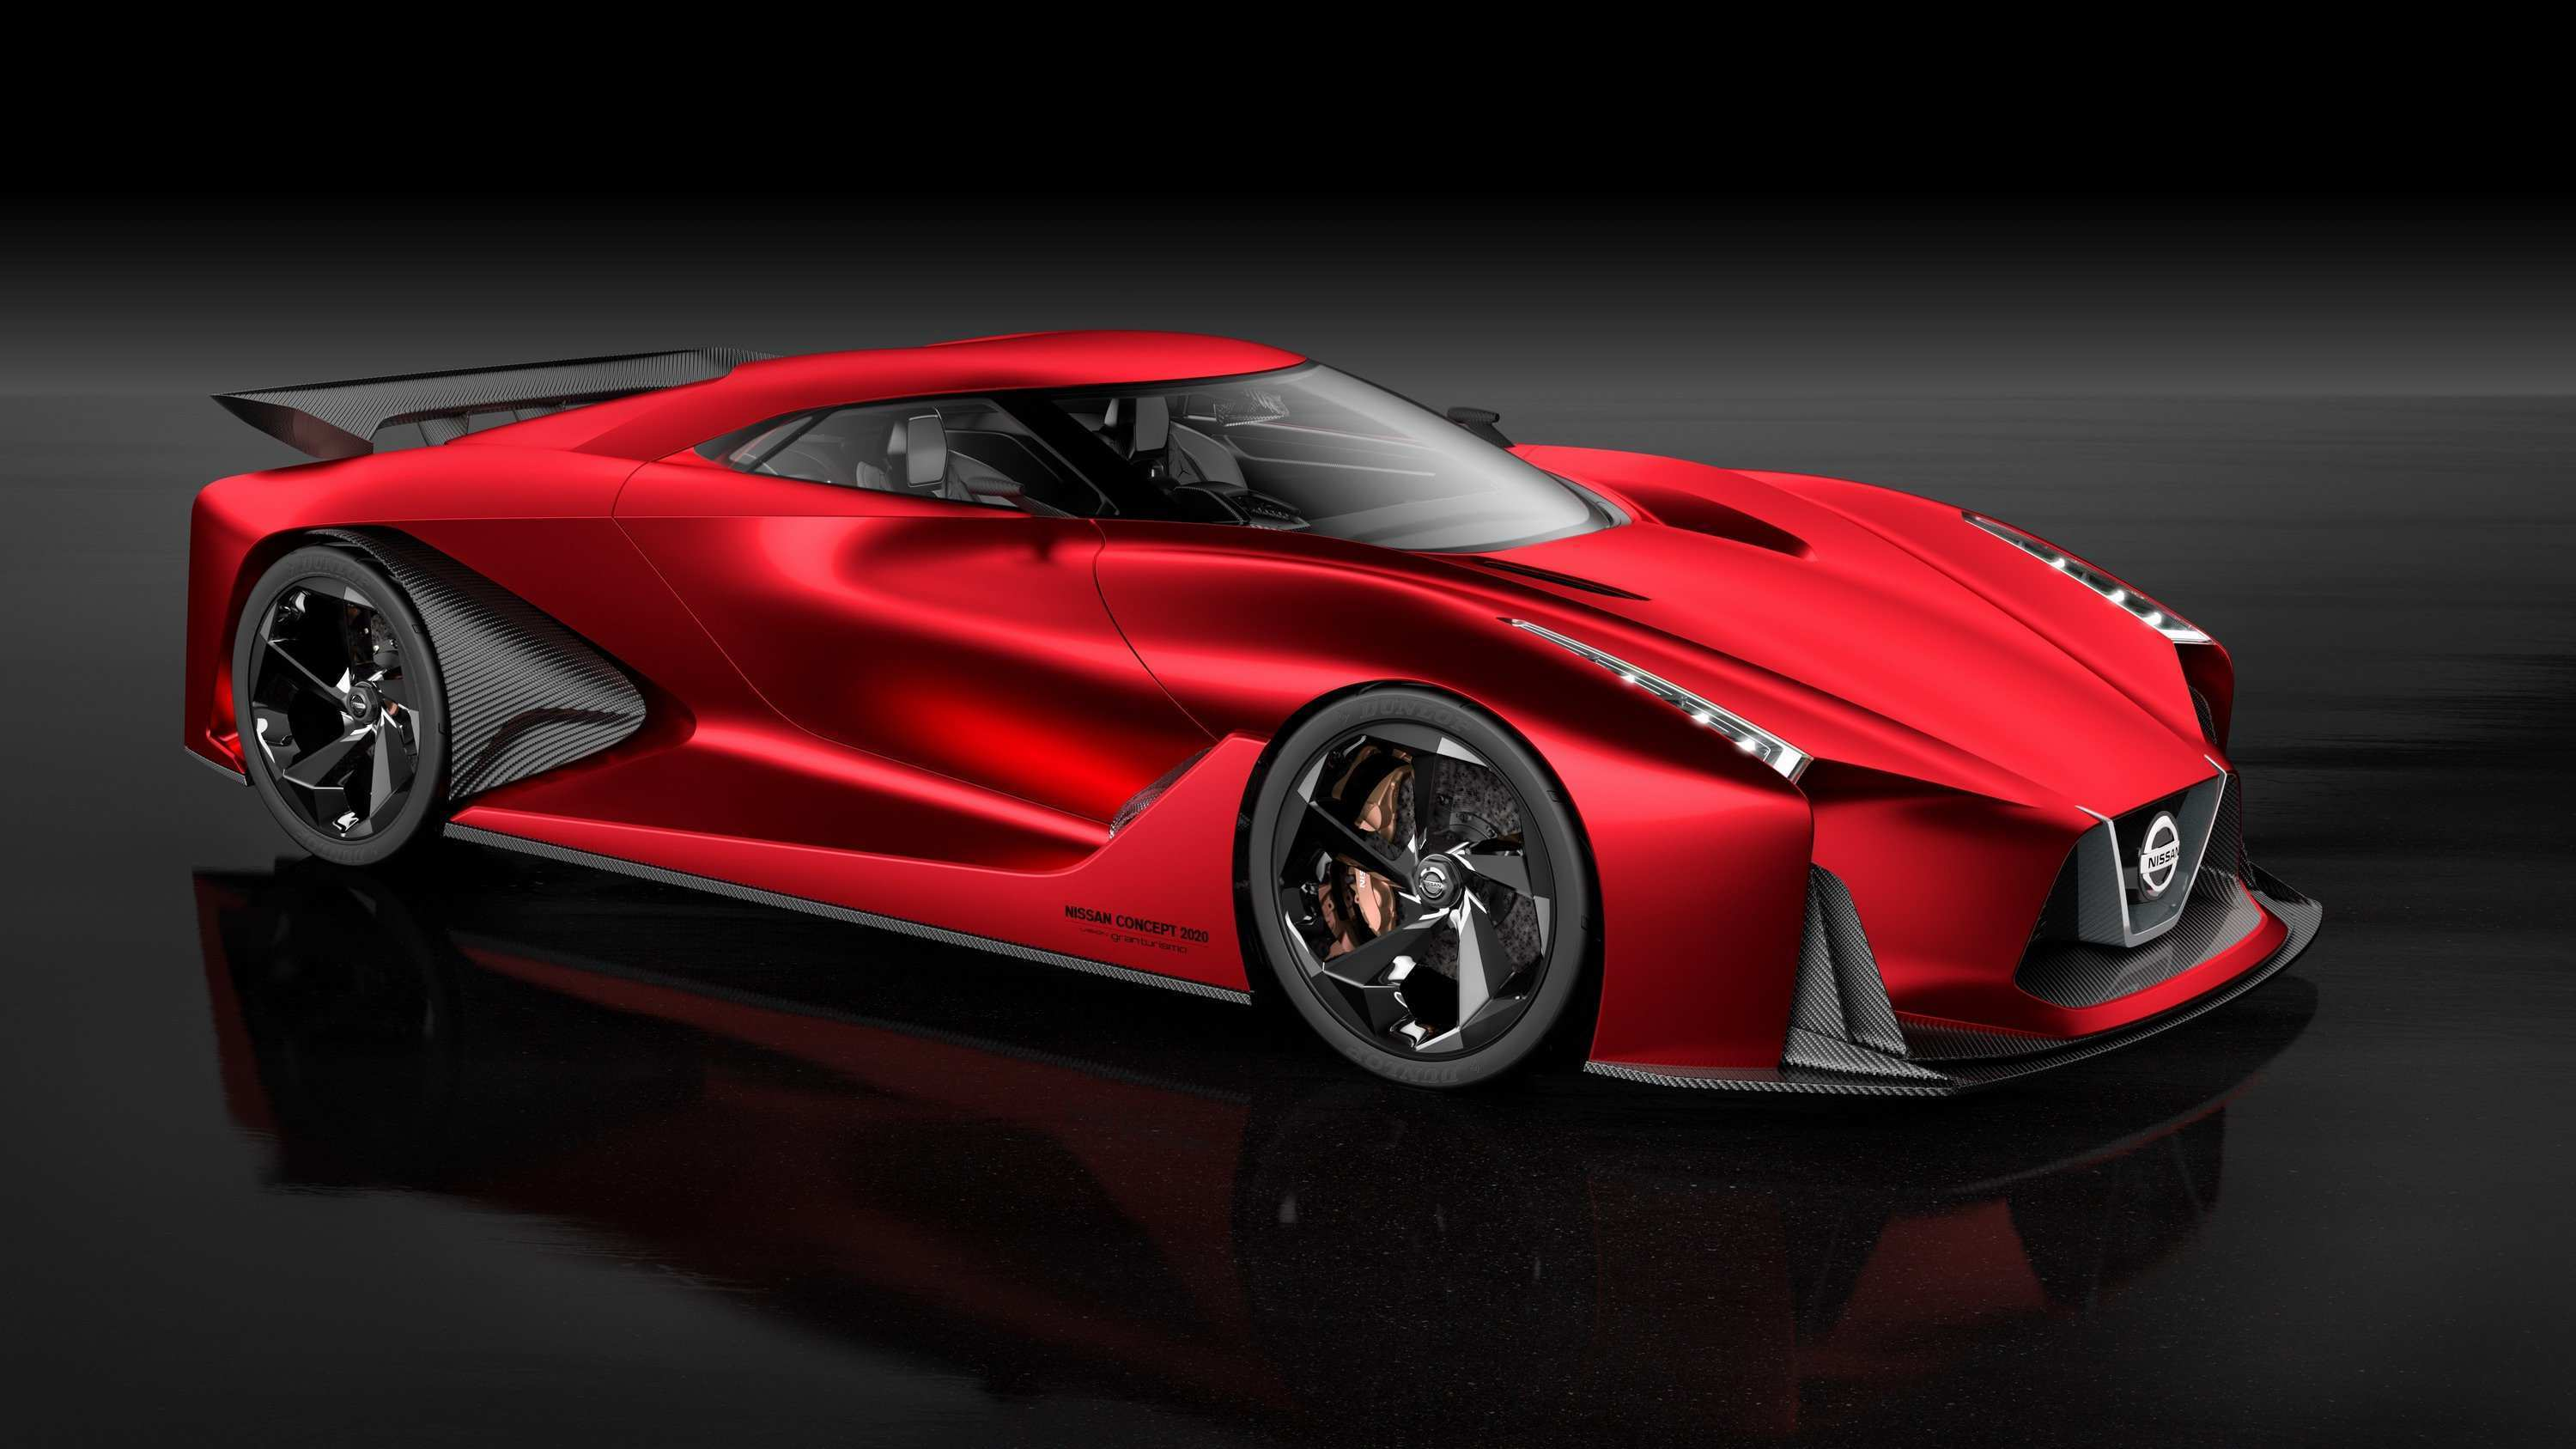 86 Concept of Nissan 2020 Gtr Model by Nissan 2020 Gtr